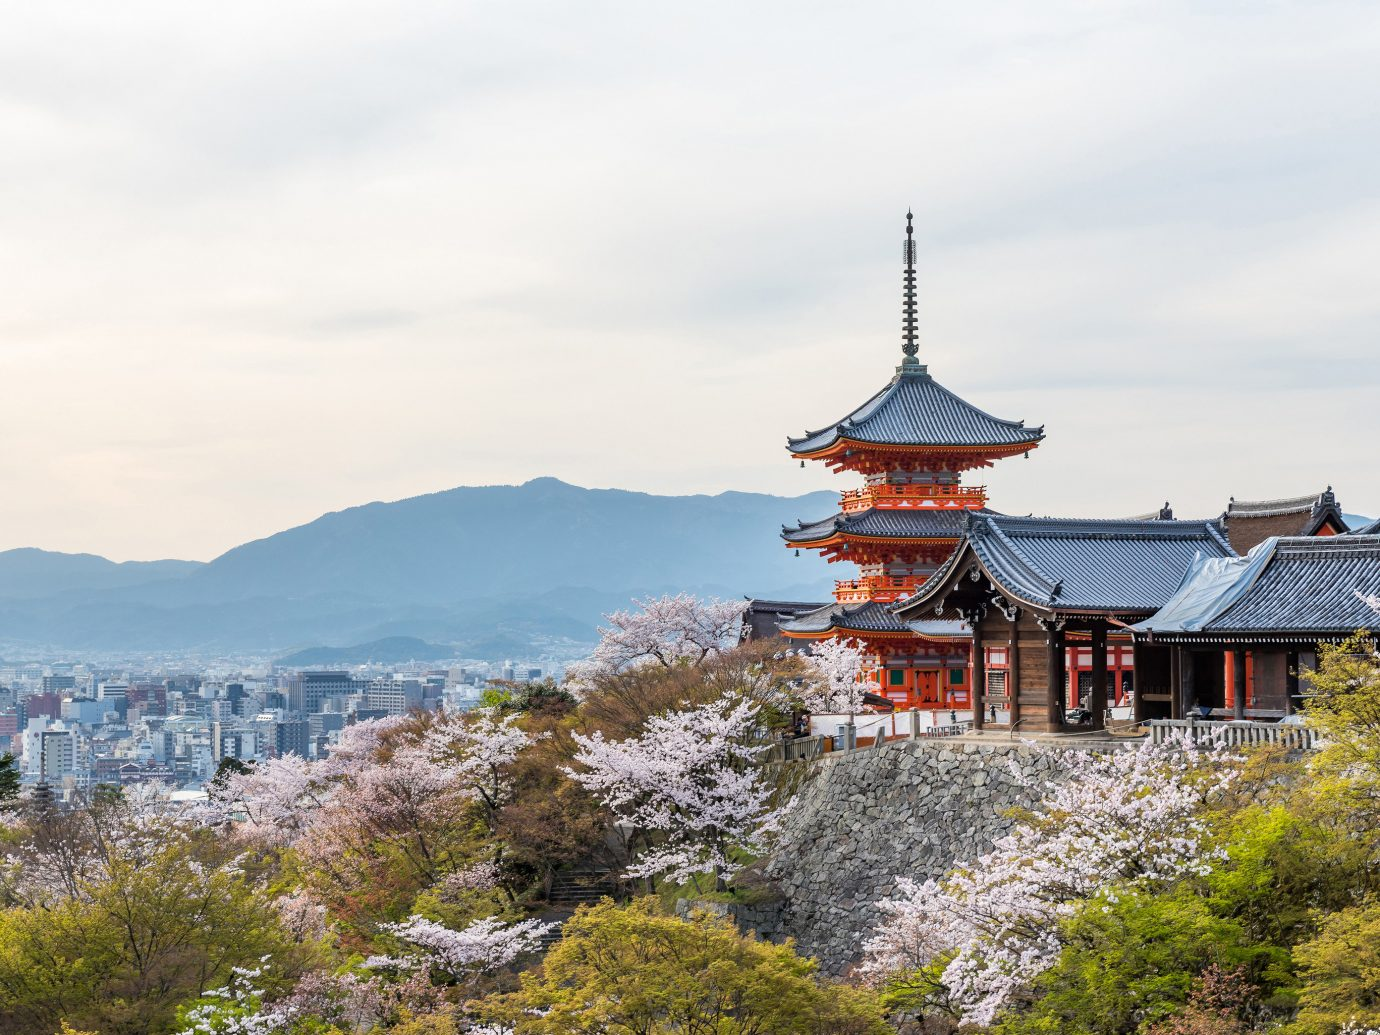 Japan Trip Ideas sky mountainous landforms plant landmark mountain tree tourist attraction mountain range cloud mount scenery hill station City spring cherry blossom tourism building alps roof landscape